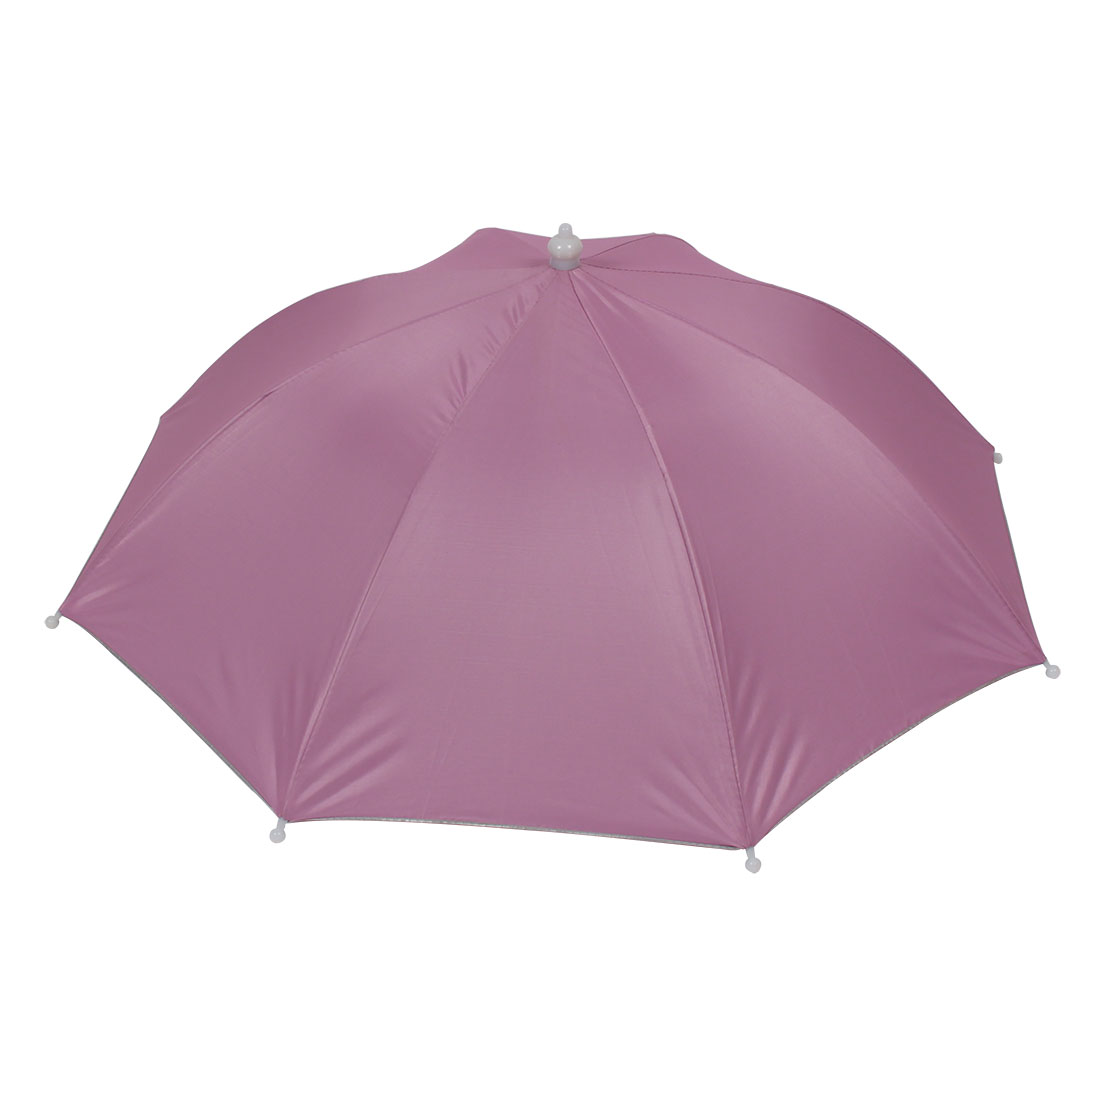 Unique Bargains Pink Hands Free Polyester Sun Umbrella Hat for ... ee53982f3685